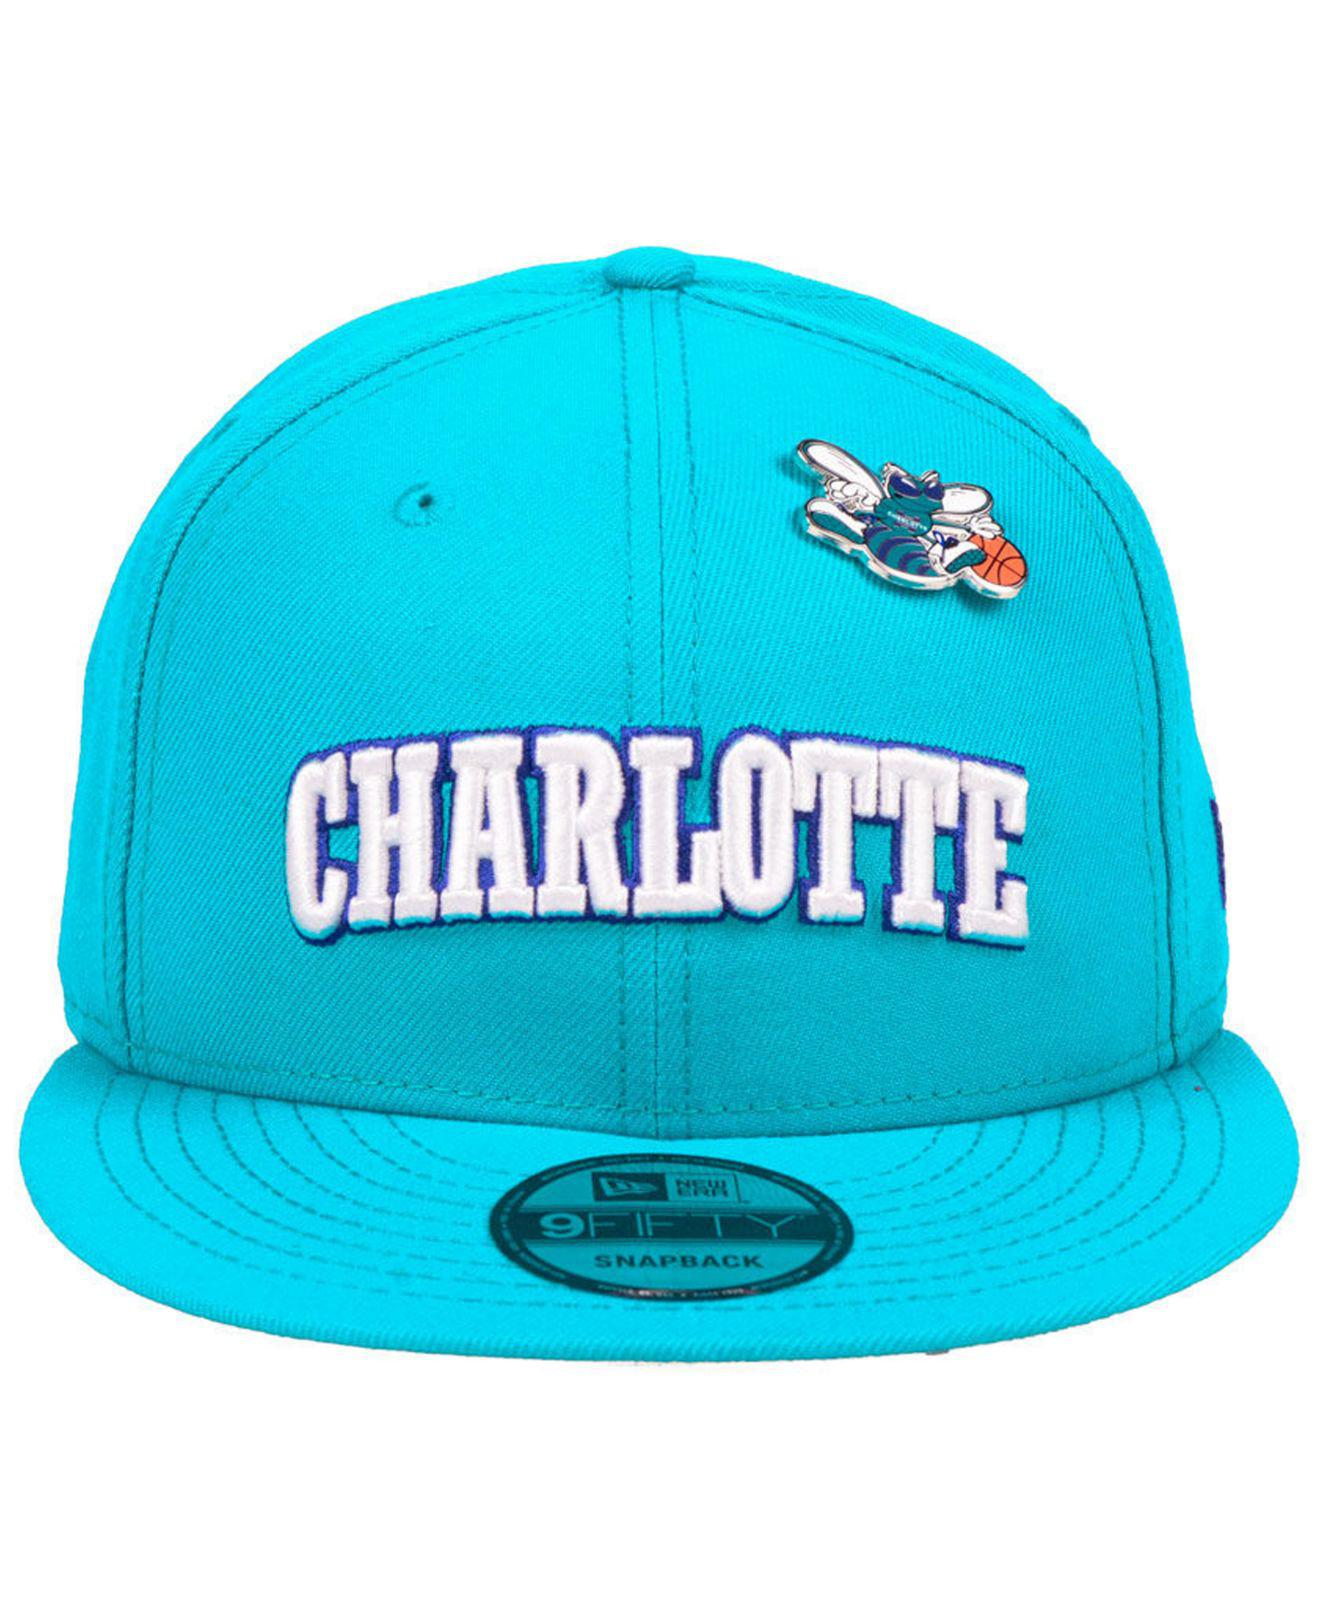 online store 98863 8b9f2 ... real lyst ktz charlotte hornets hardwood classic nights pin 9fifty  snapback cap in blue for men